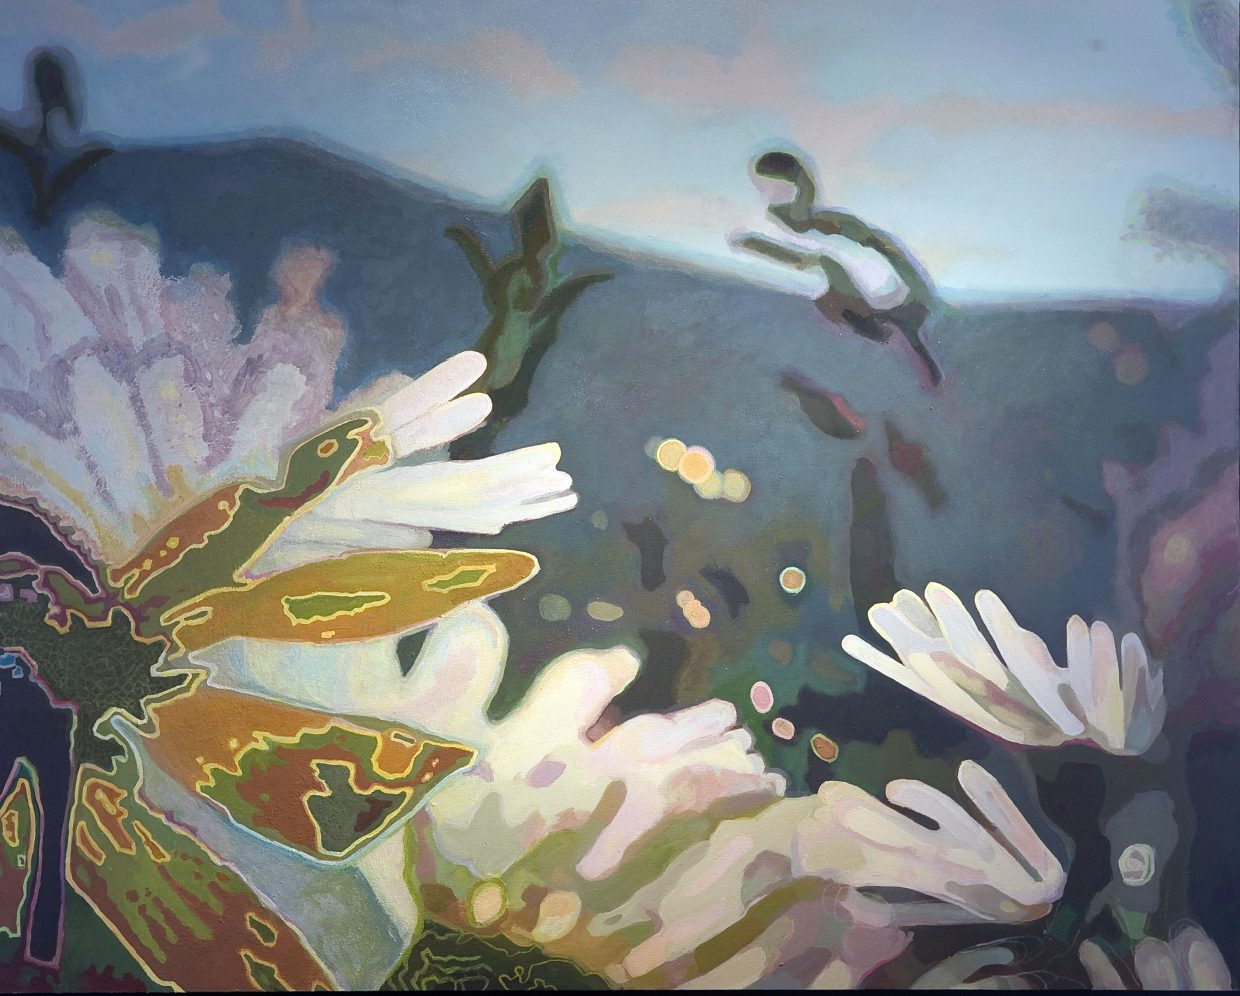 The paintings of local artist Diane Cionni will be on display this month at the RED art gallery.